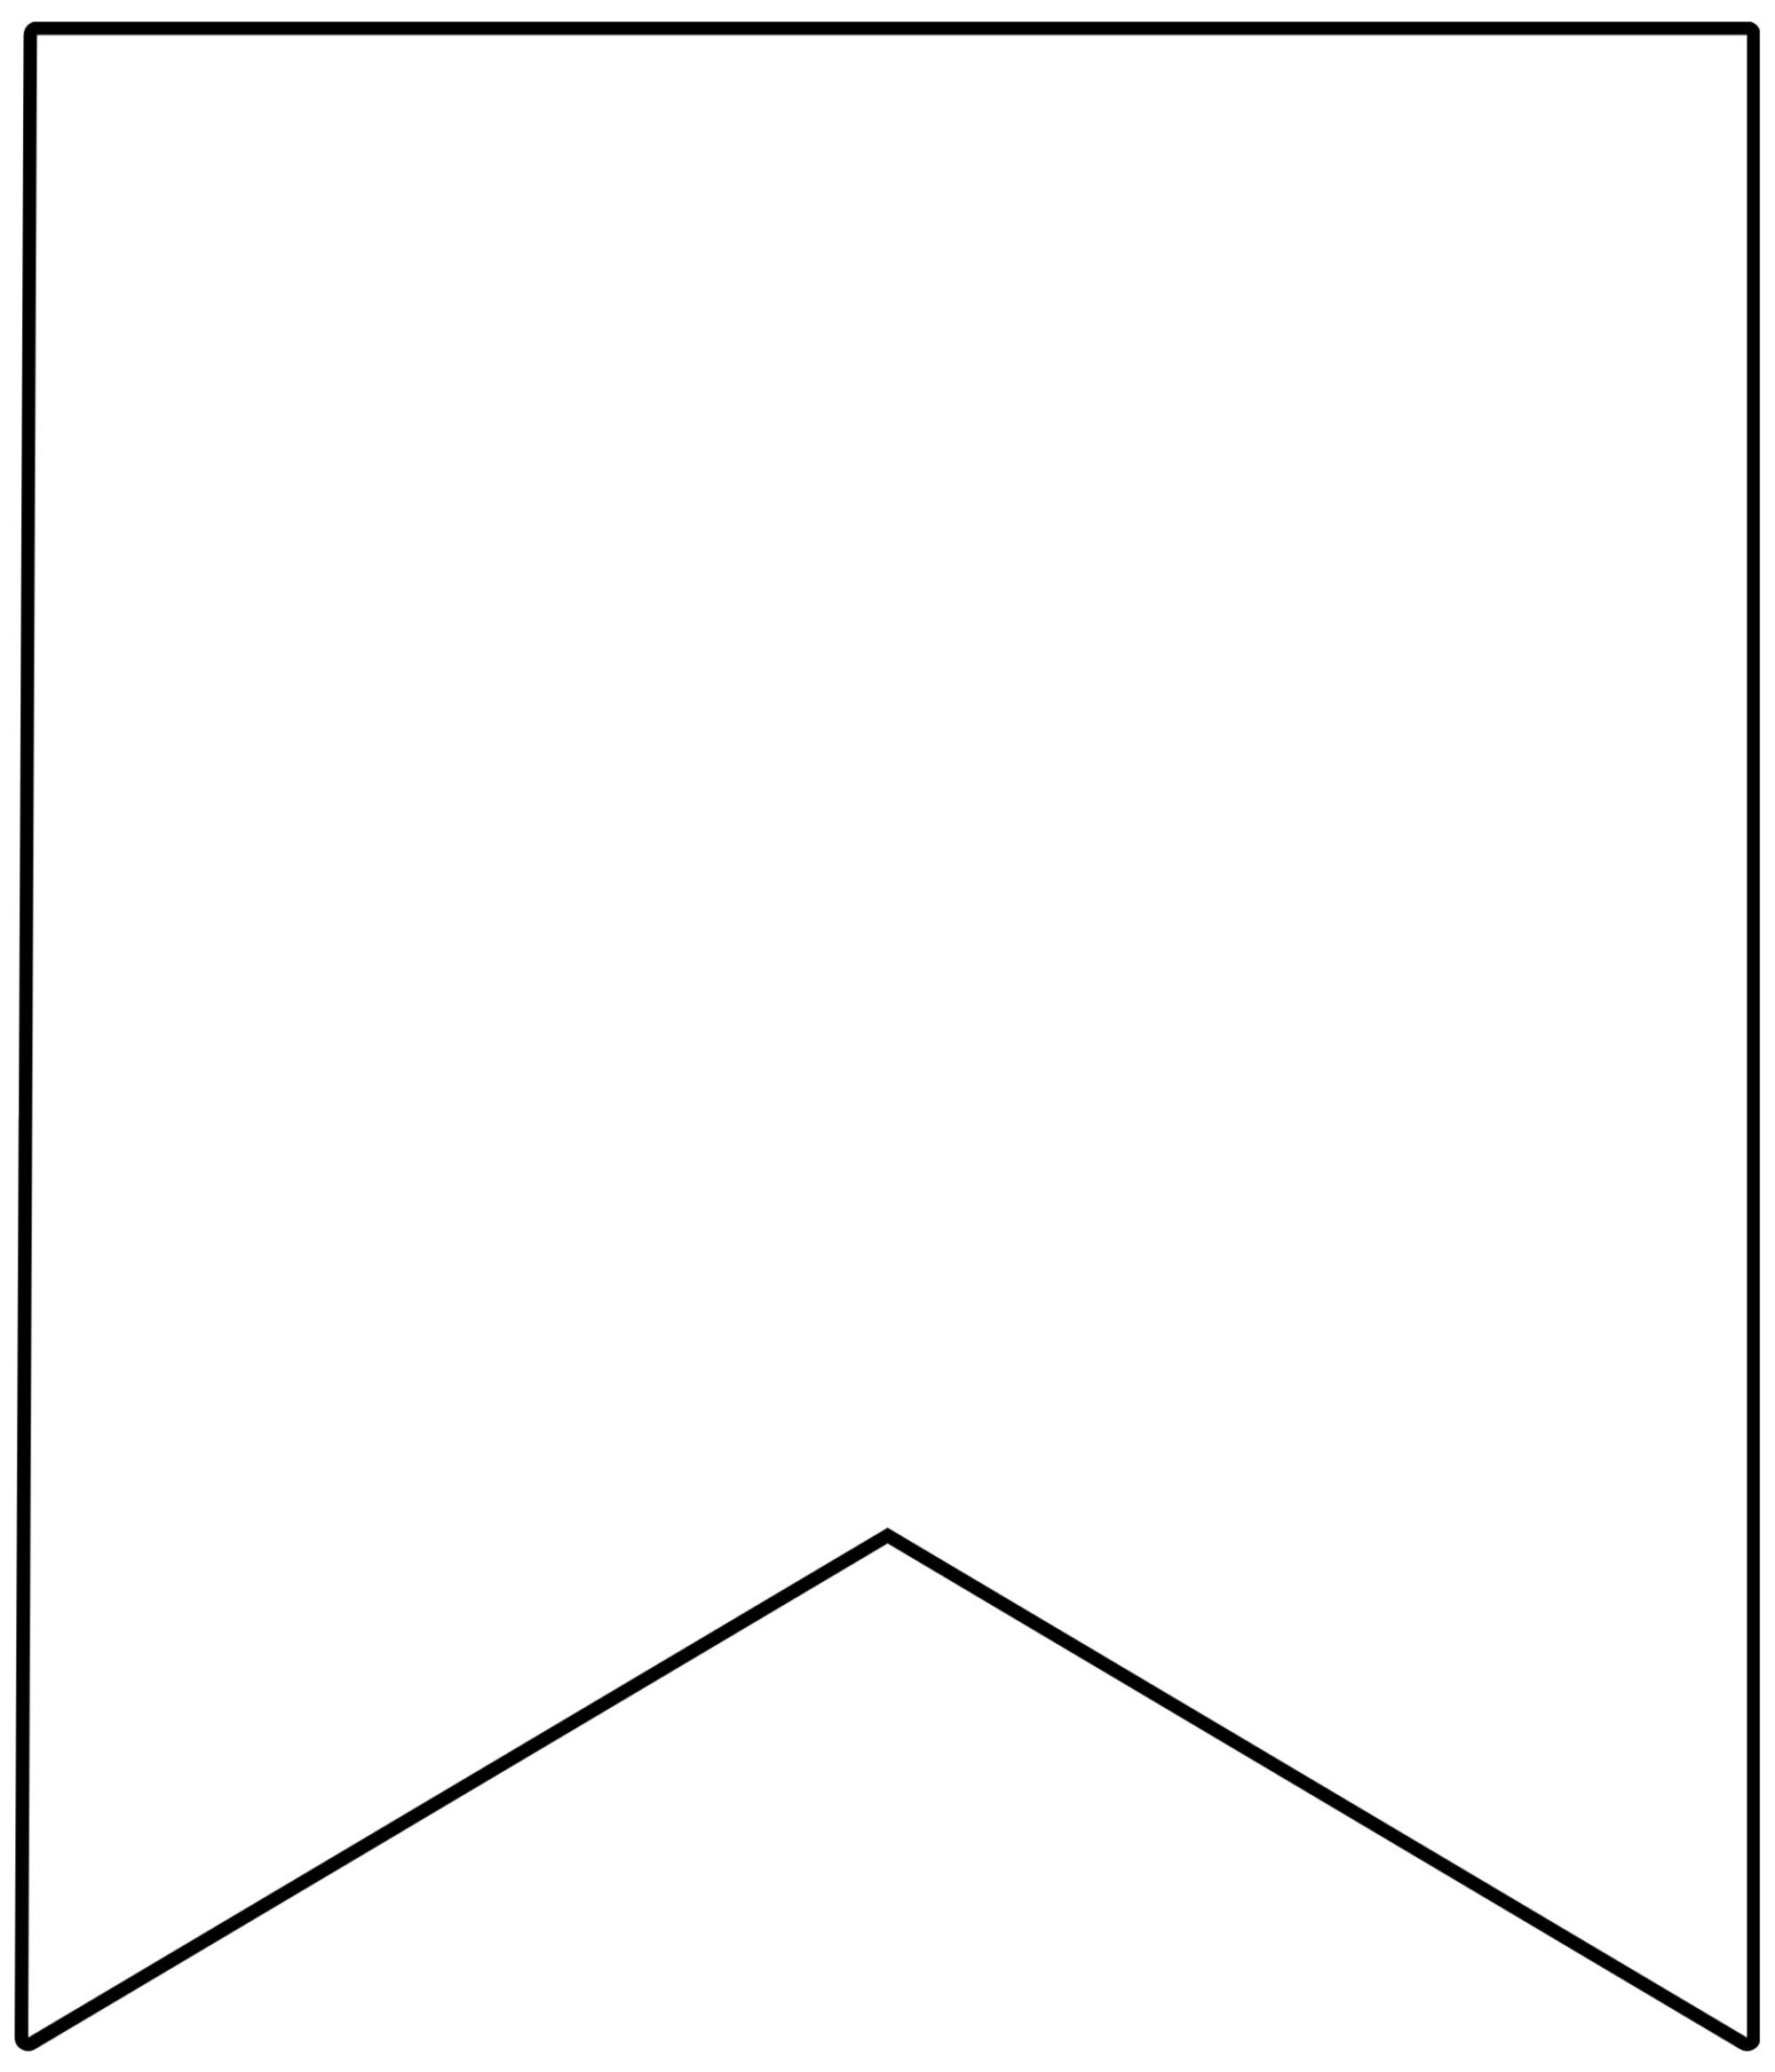 Free Printable Banner Templates {Blank Banners} | Birthday Parties - Free Printable Blank Flag Template